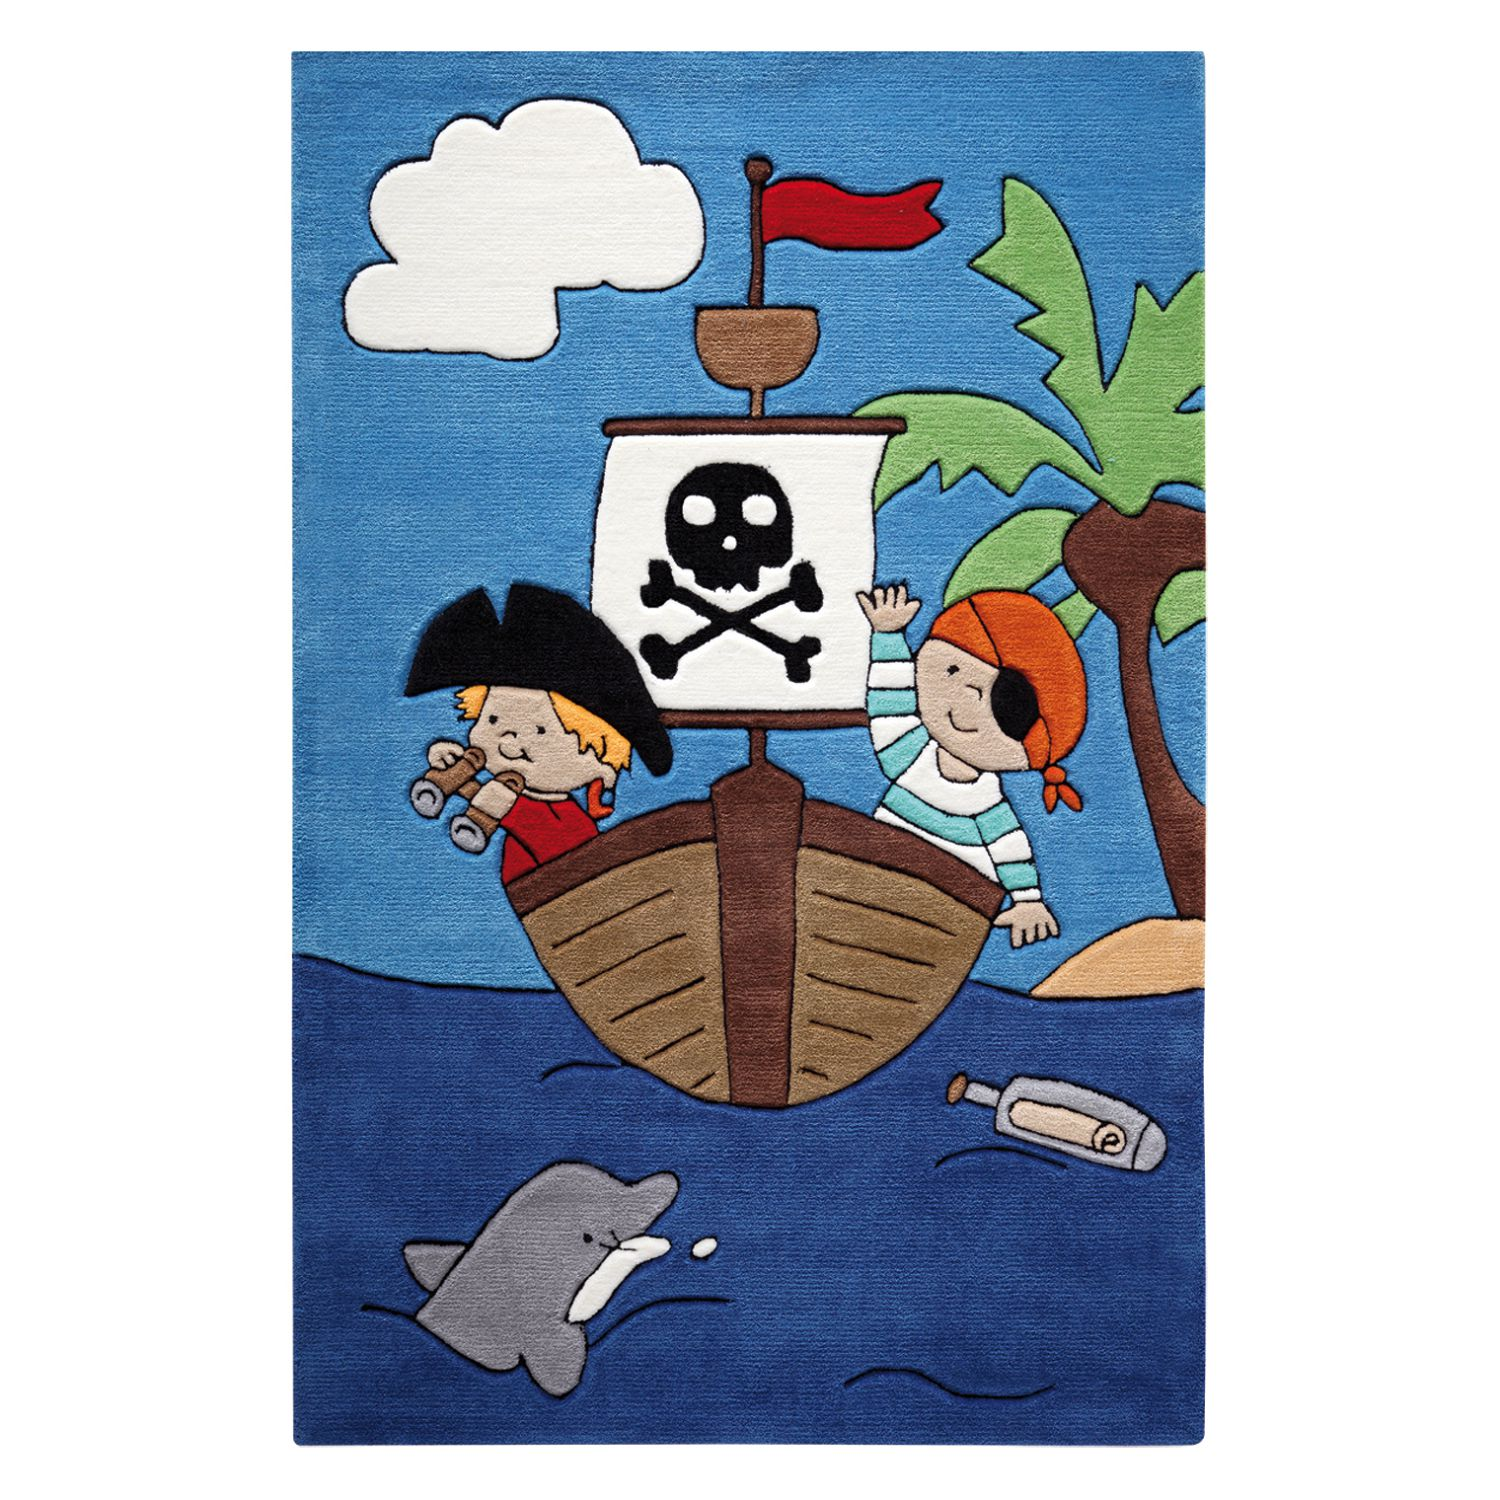 Kinderteppich Pirate Kids - 130 x 190 cm, SMART KIDS